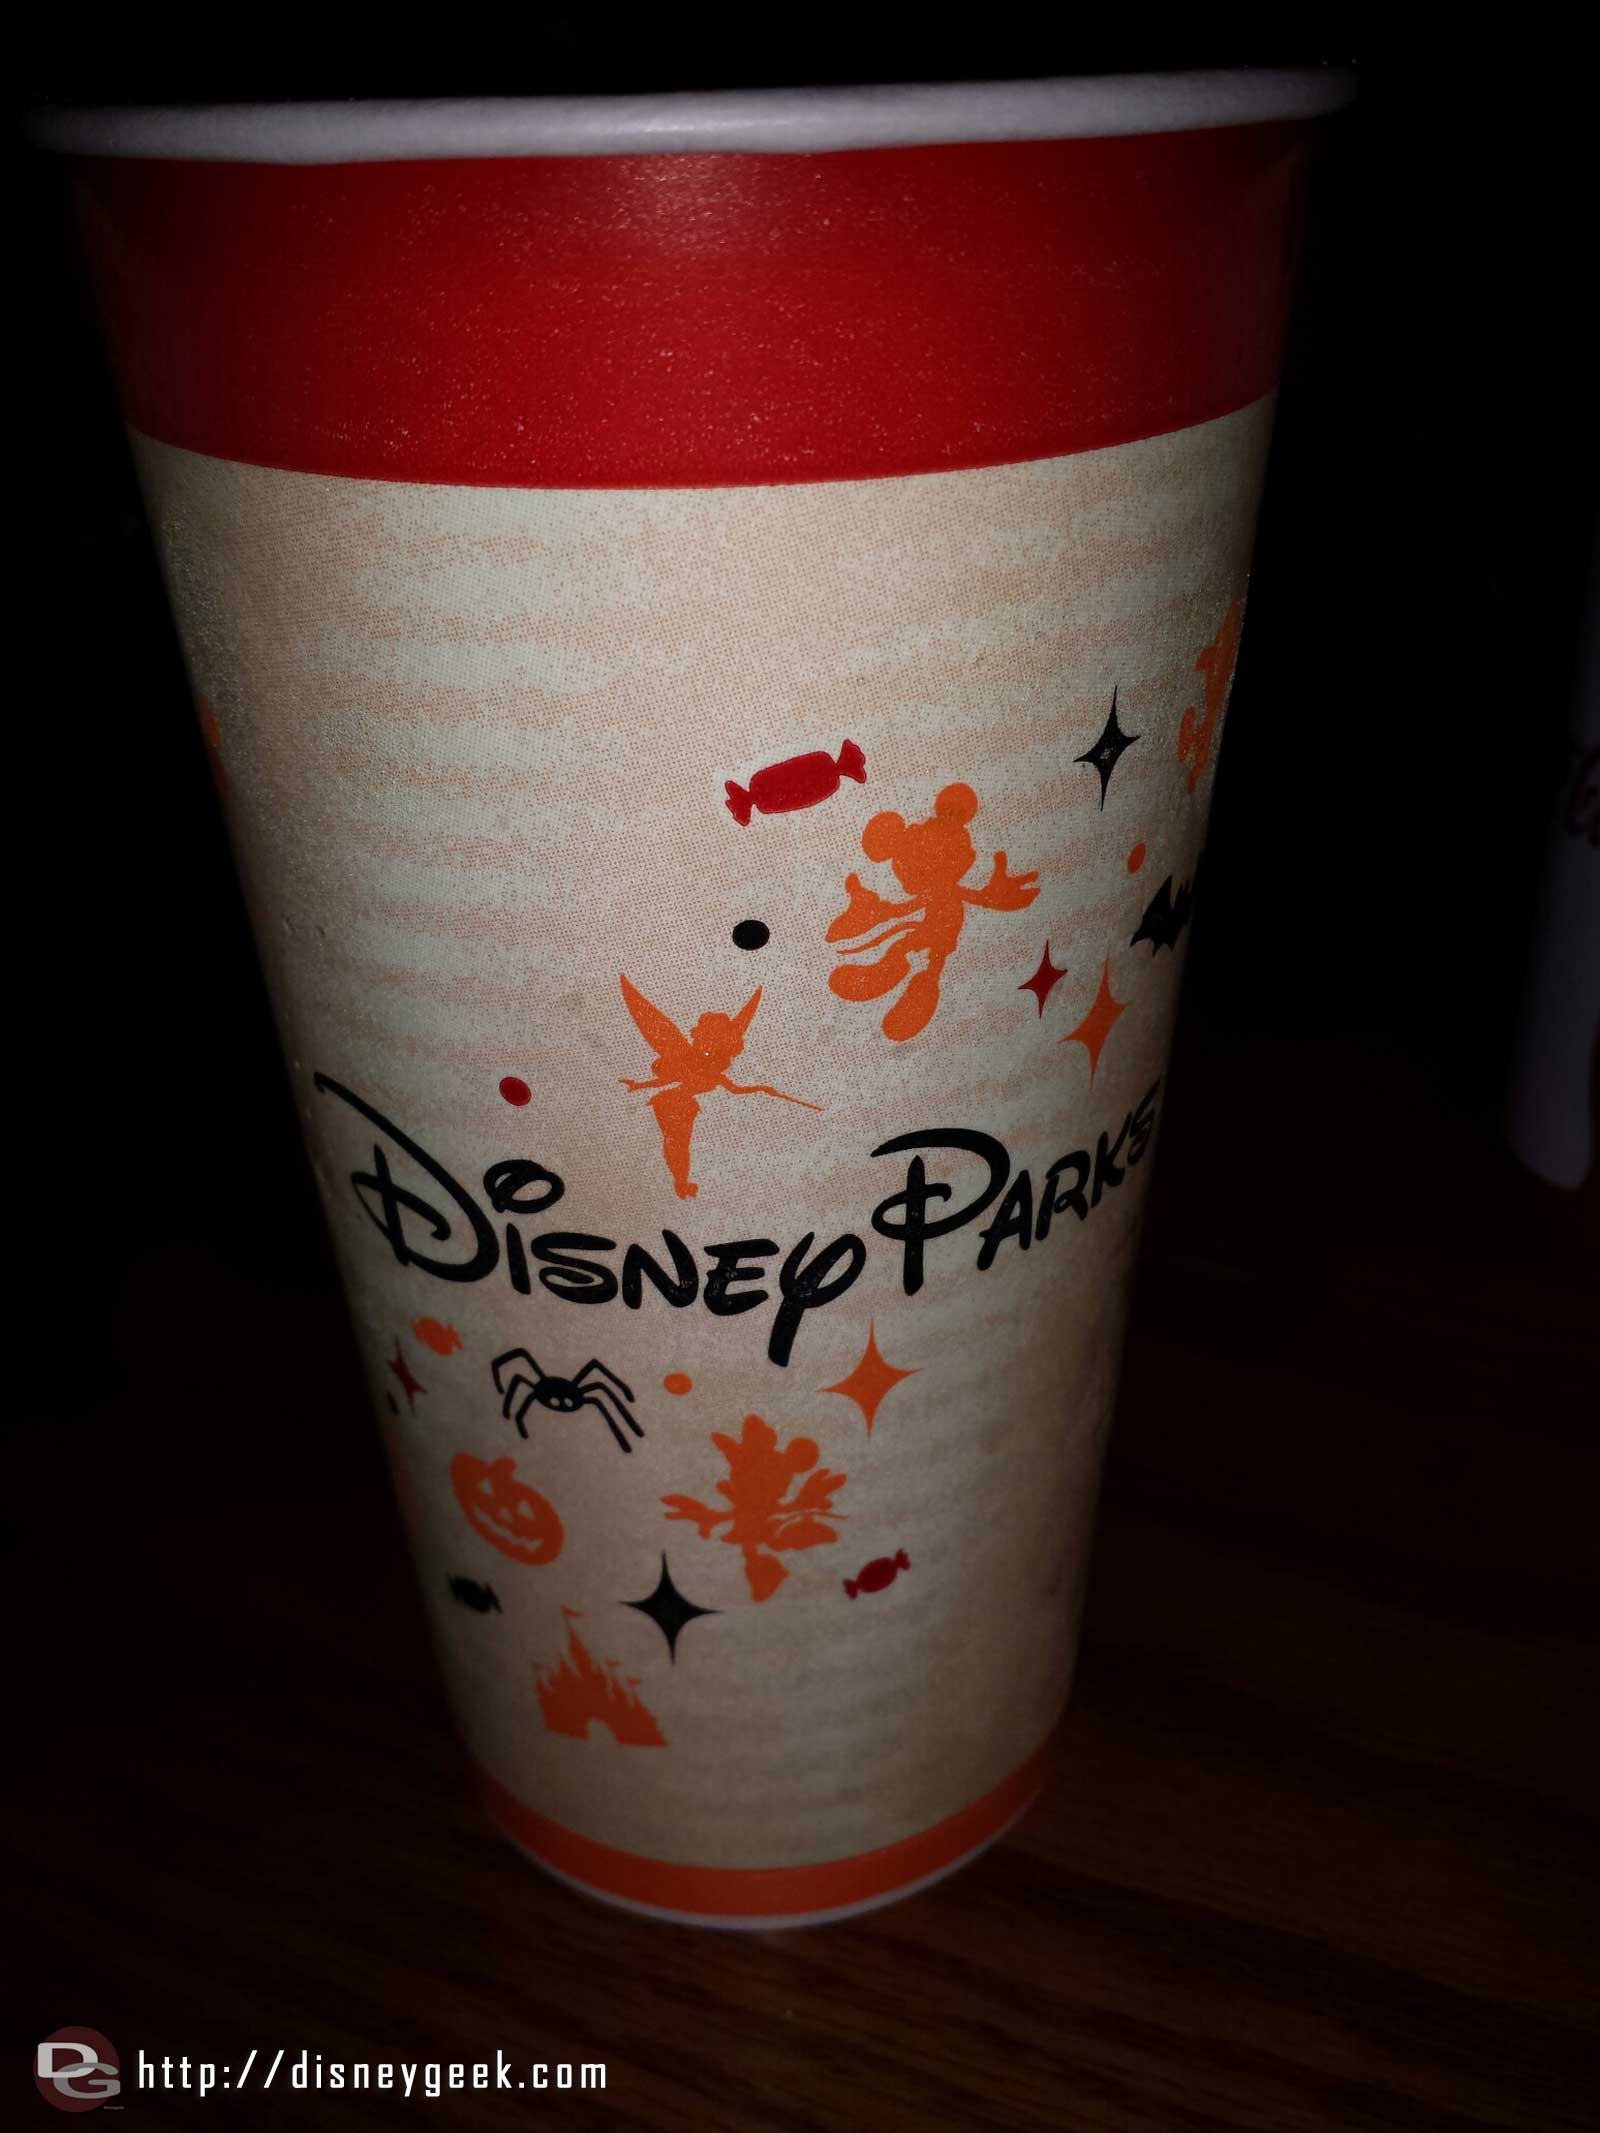 Generic Disney Parks Halloween fountain drink cups are back again this tear